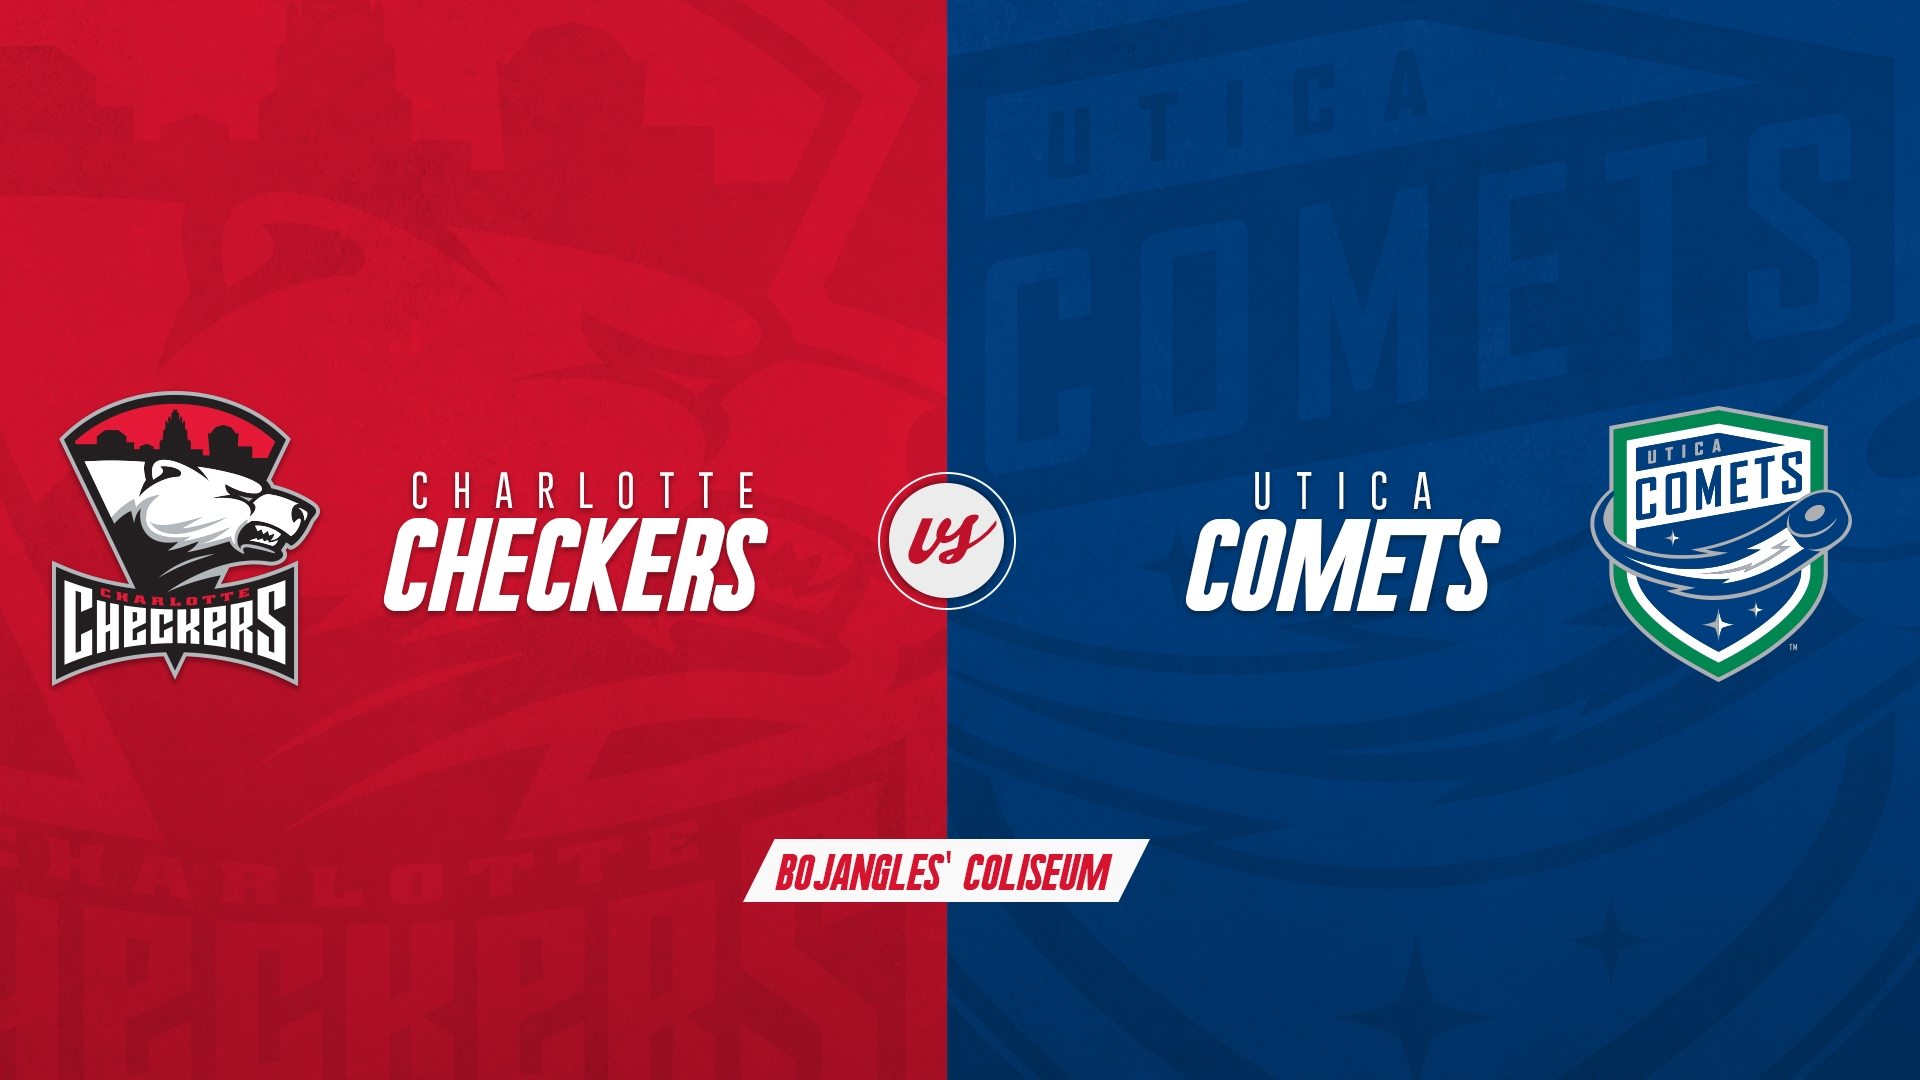 Charlotte Checkers vs. Utica Comets